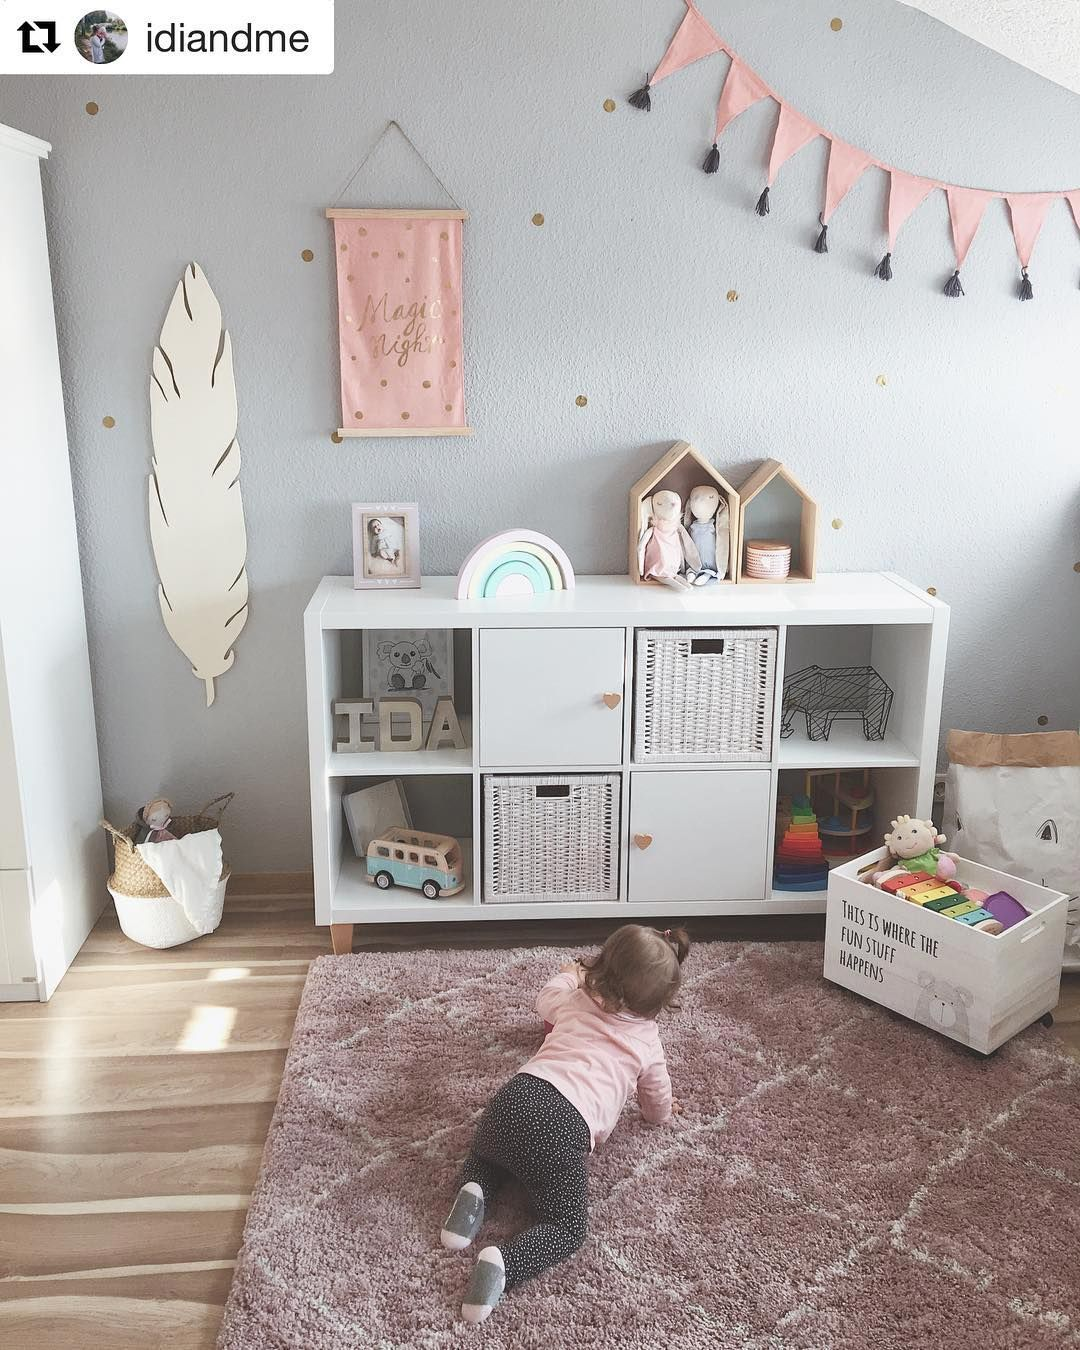 ein zauberhaftes kinderzimmer mit ikea kallax und herzm belkn pfen in natur ikea pimp up. Black Bedroom Furniture Sets. Home Design Ideas